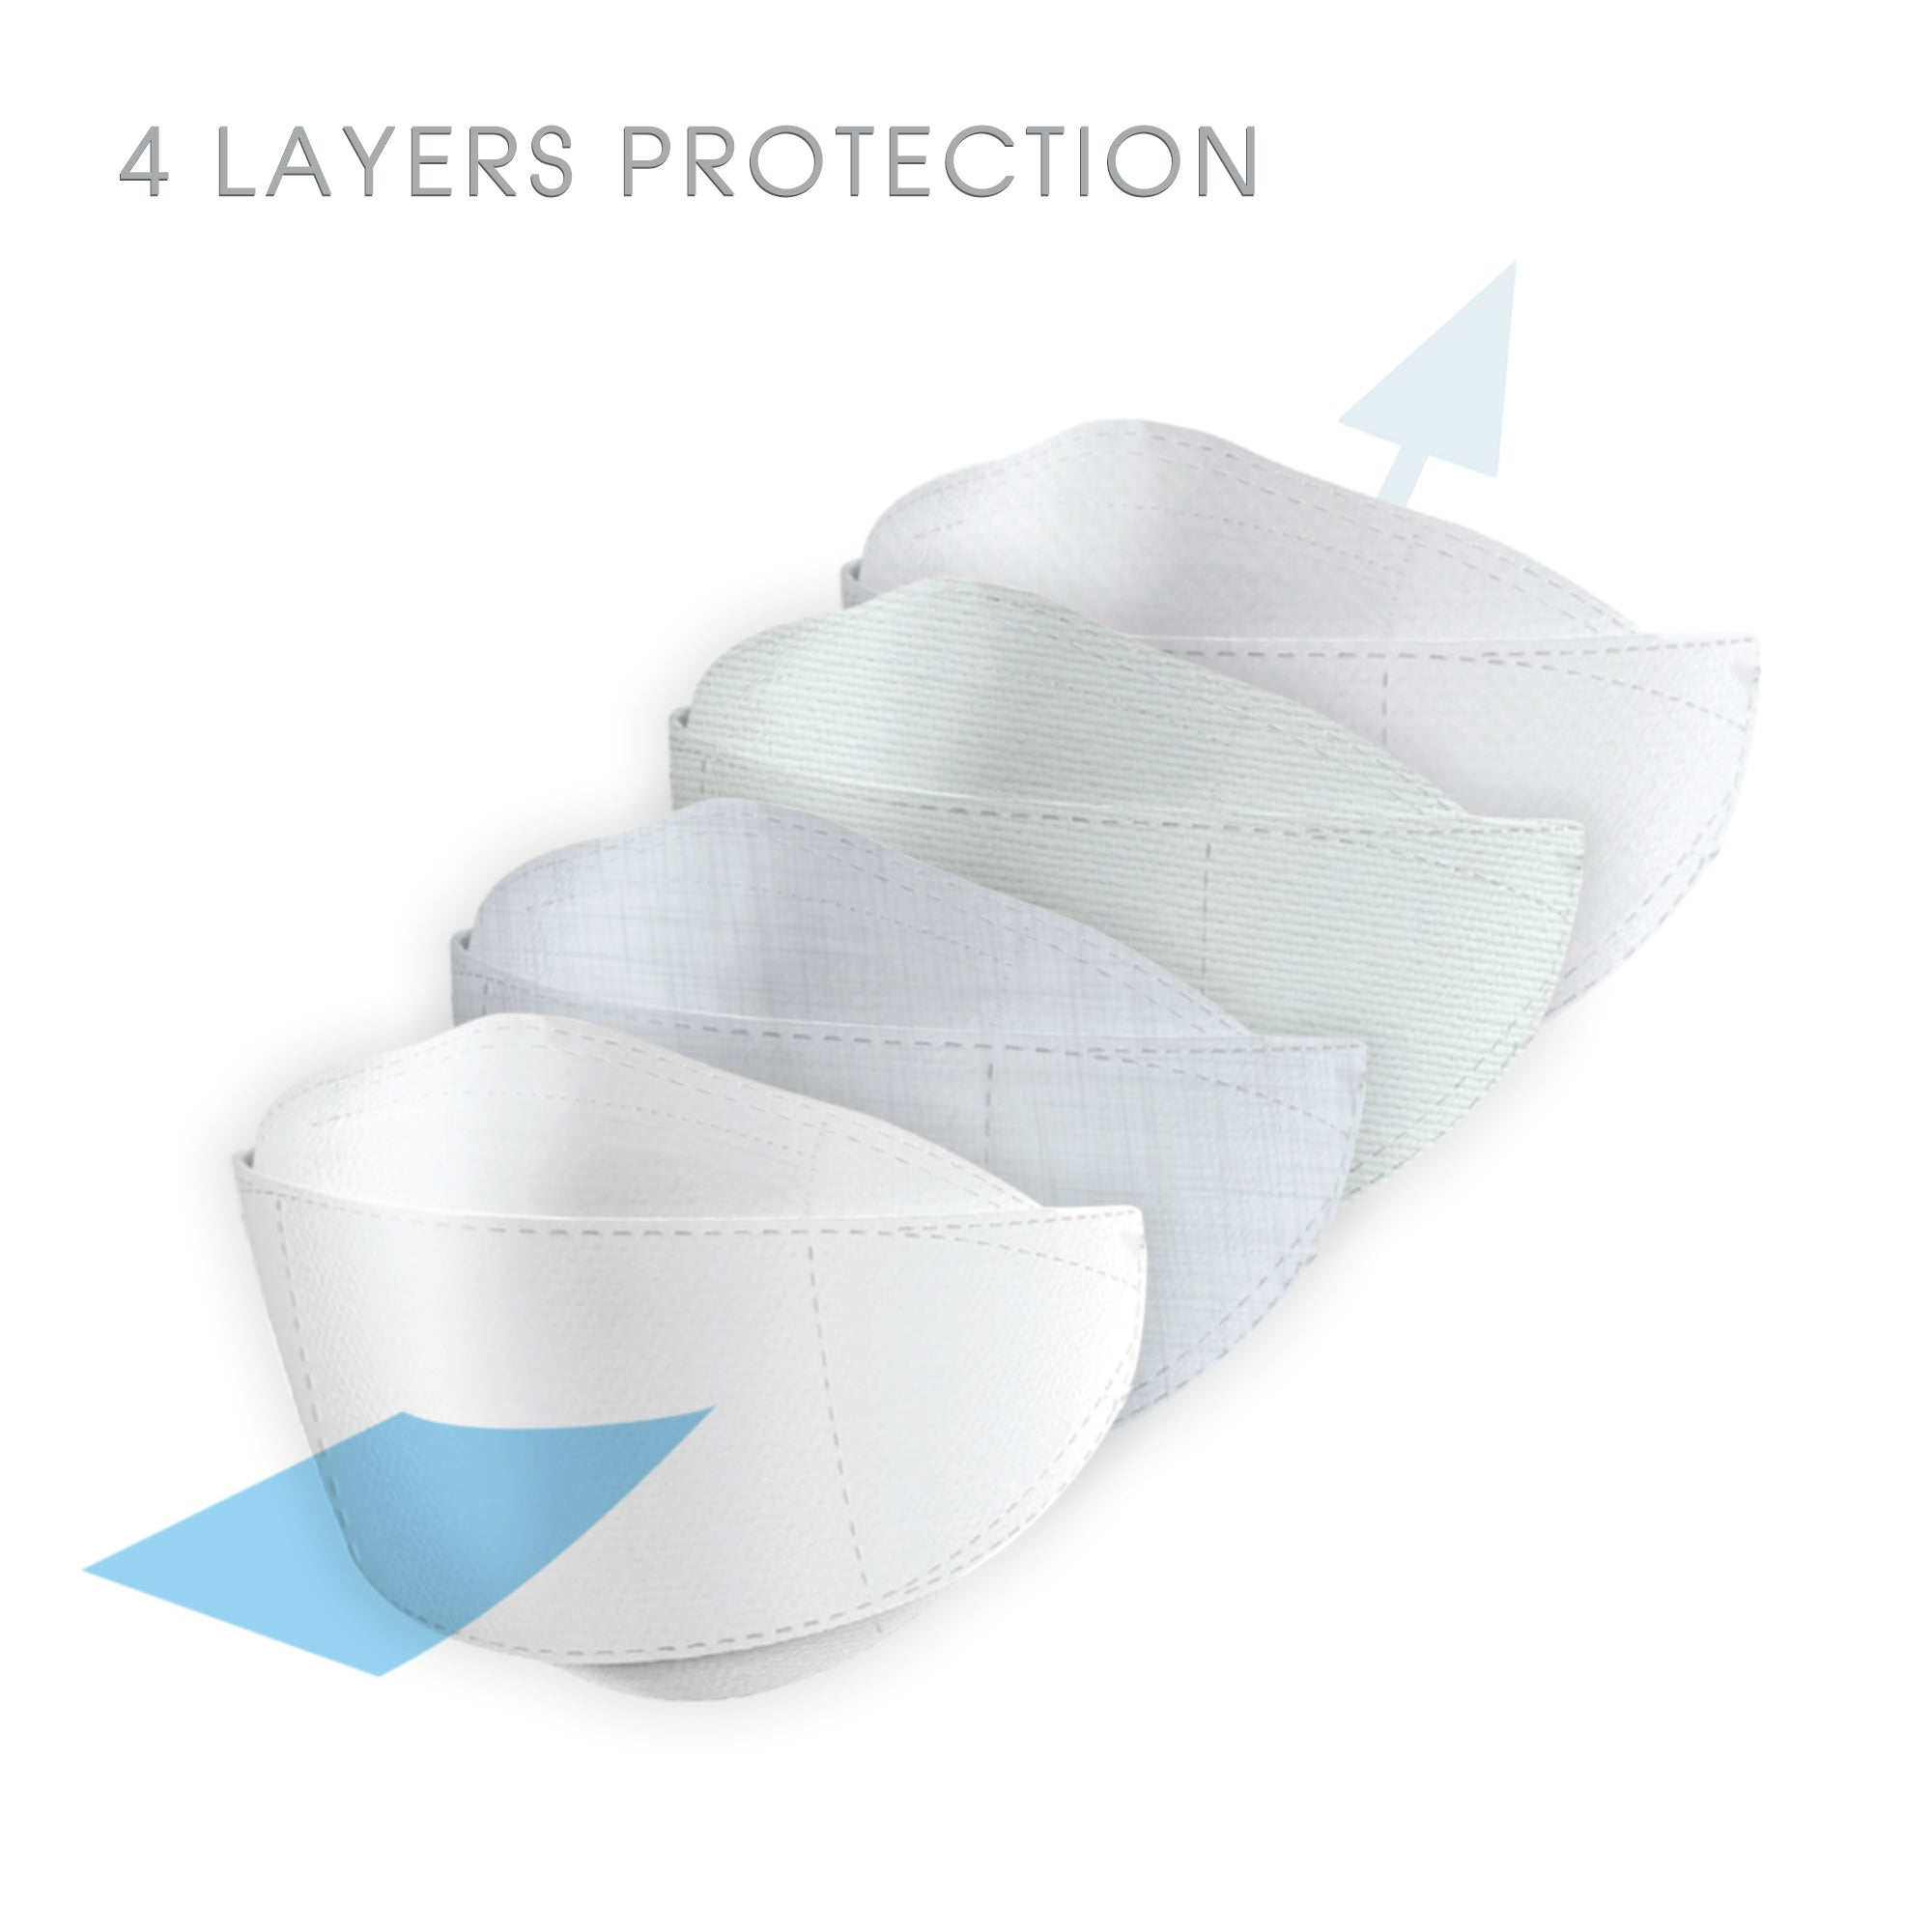 ILWOUL 4 Layer Disposable Face Mask (1-pack)